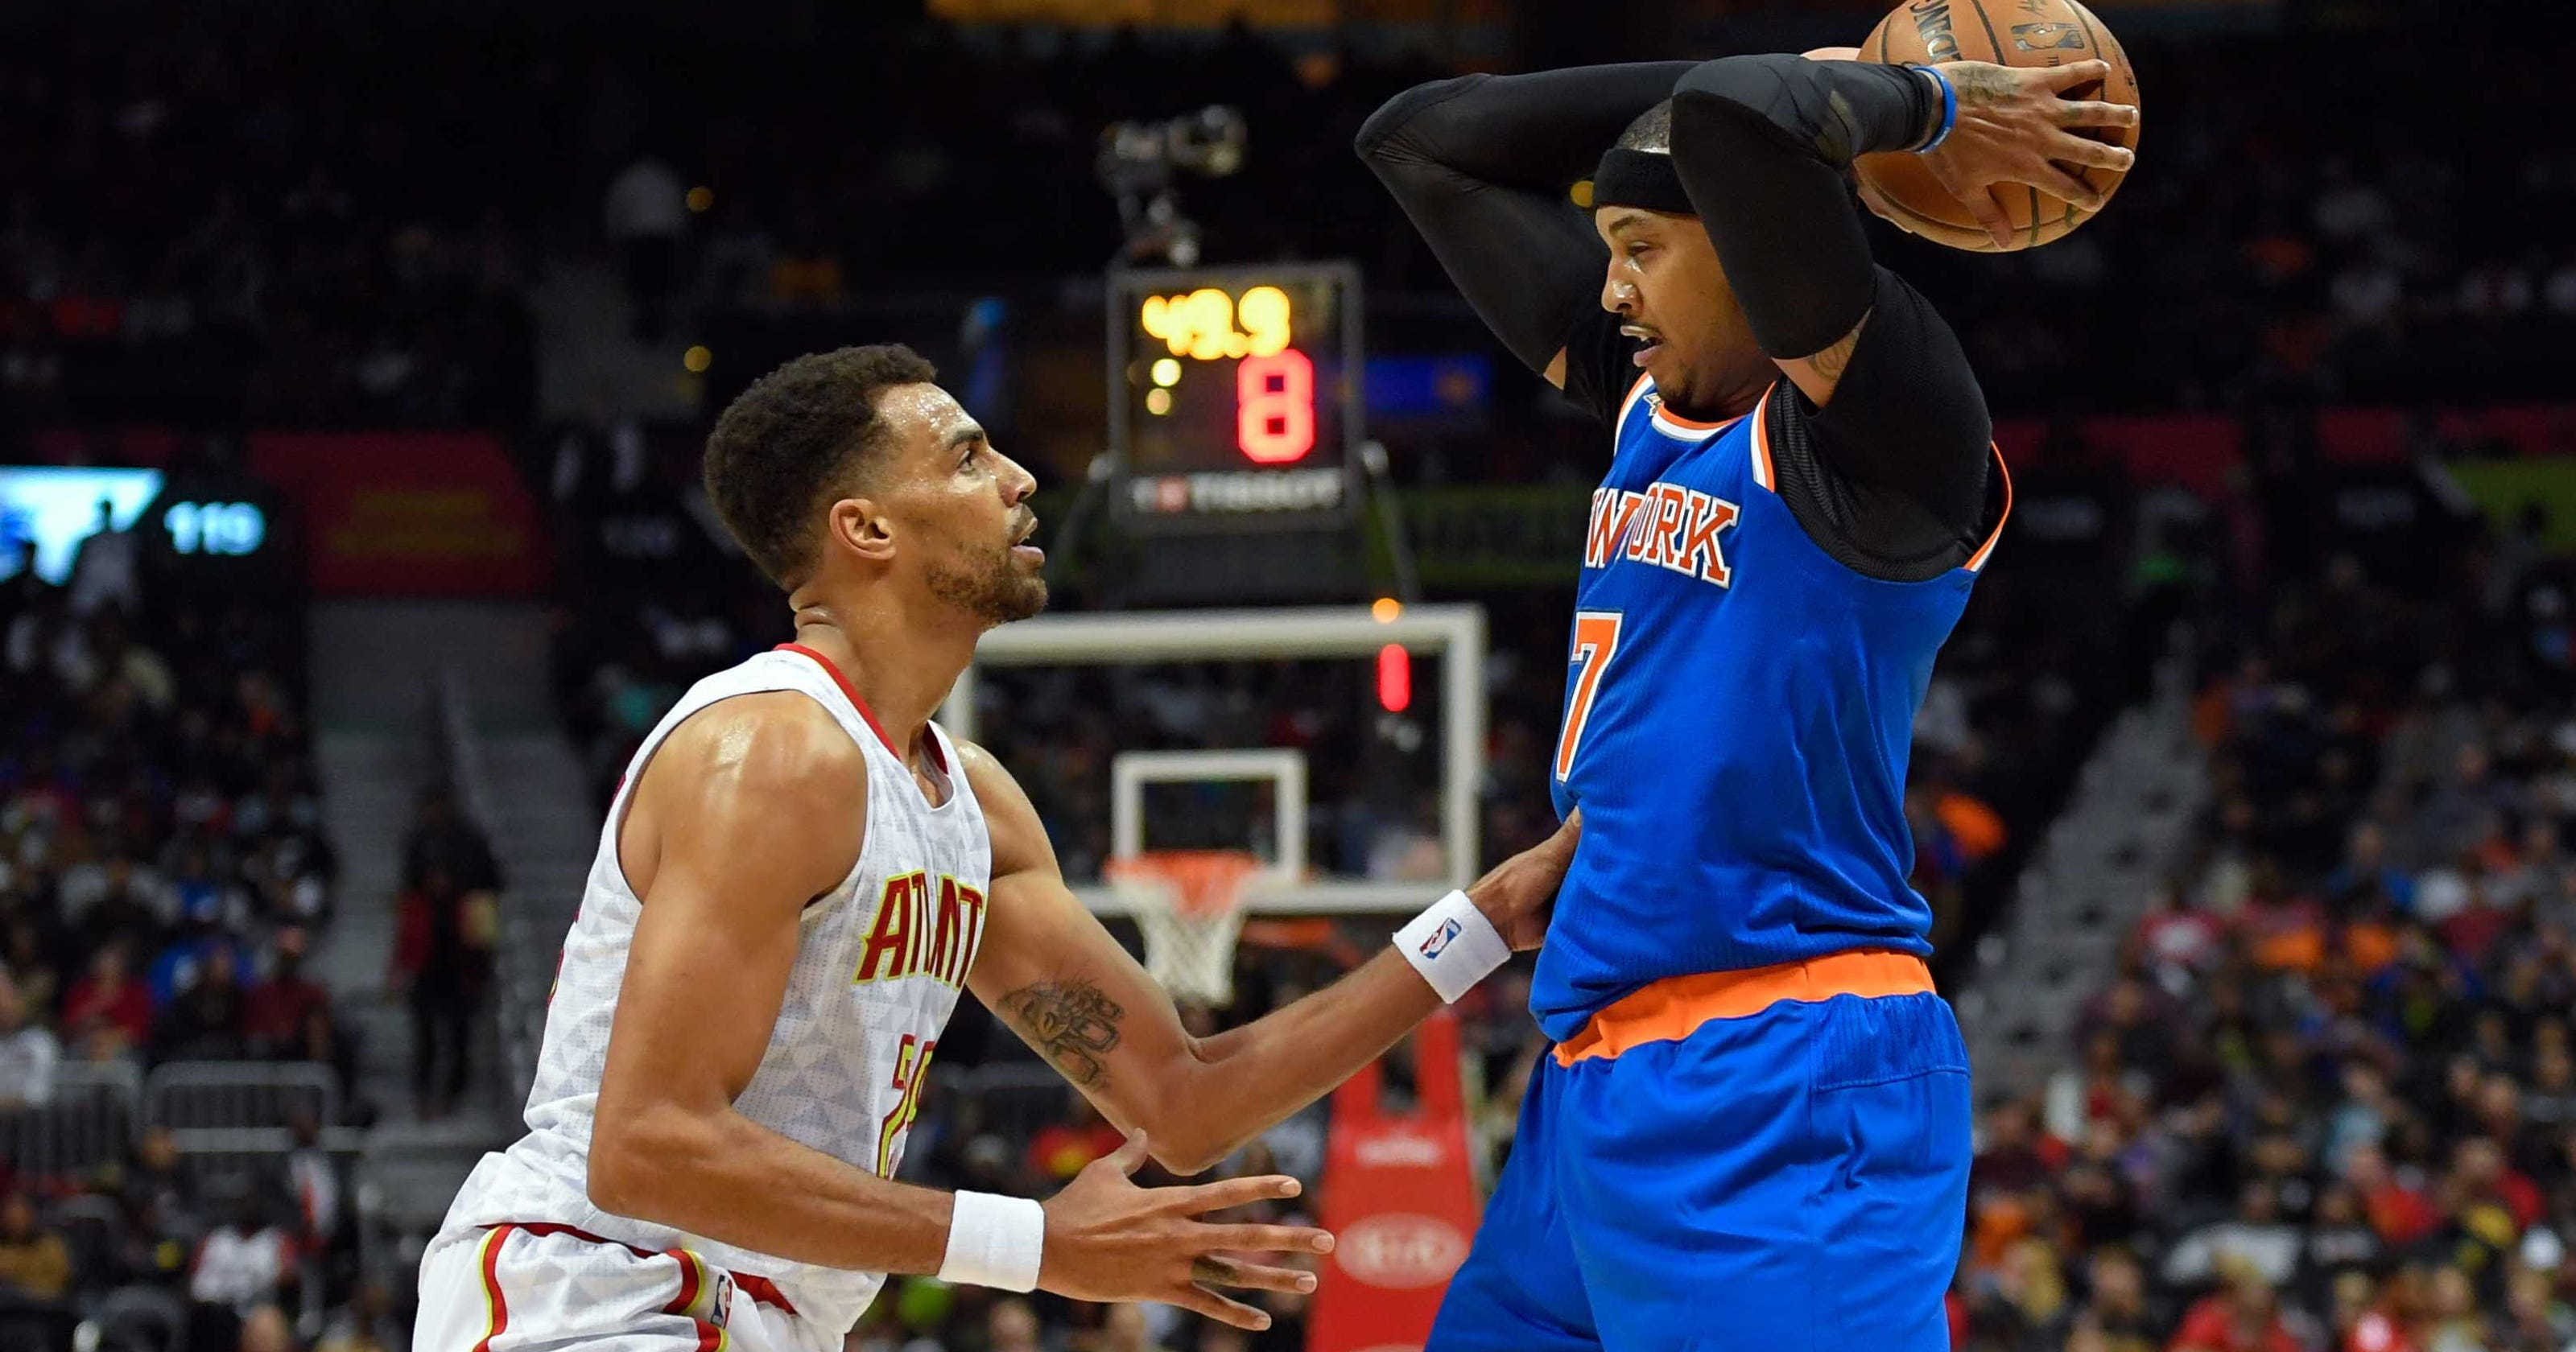 aa632e3cac34 Knicks  Carmelo Anthony ejected for hitting Hawks player in the face